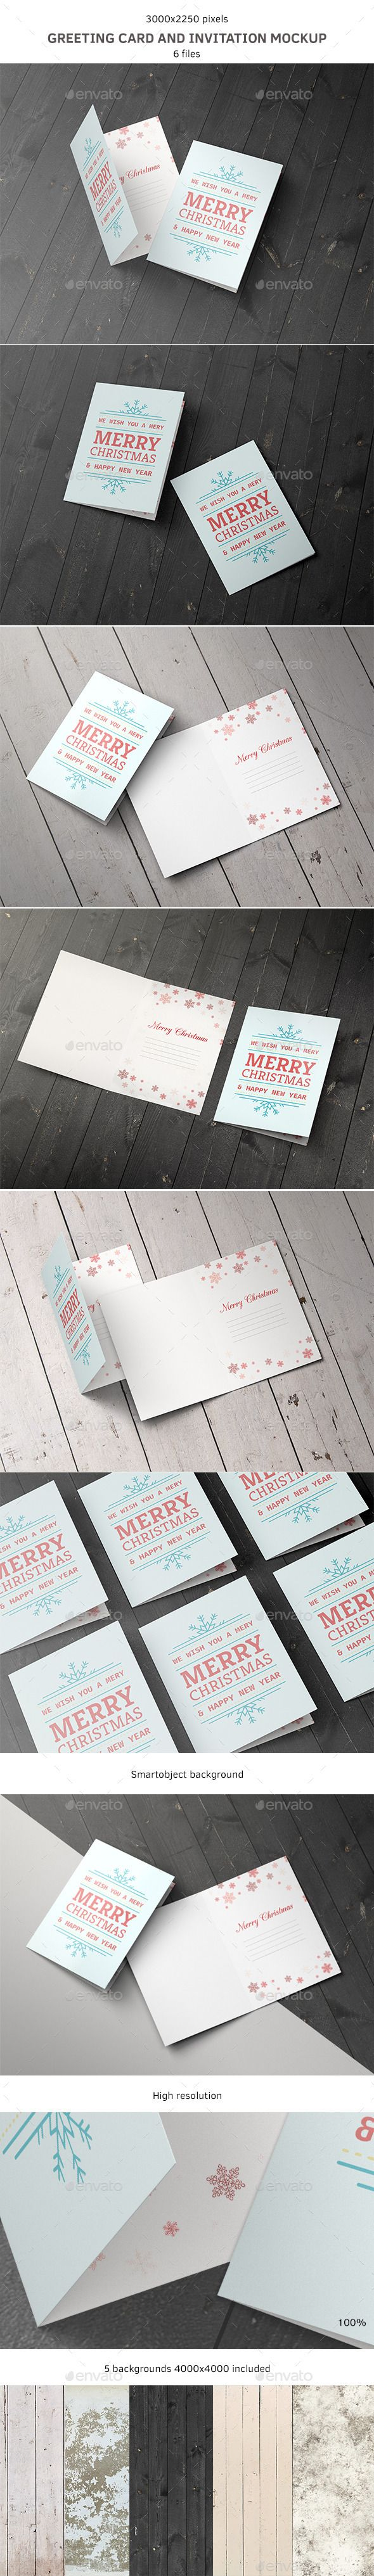 greeting card and invitation mock up